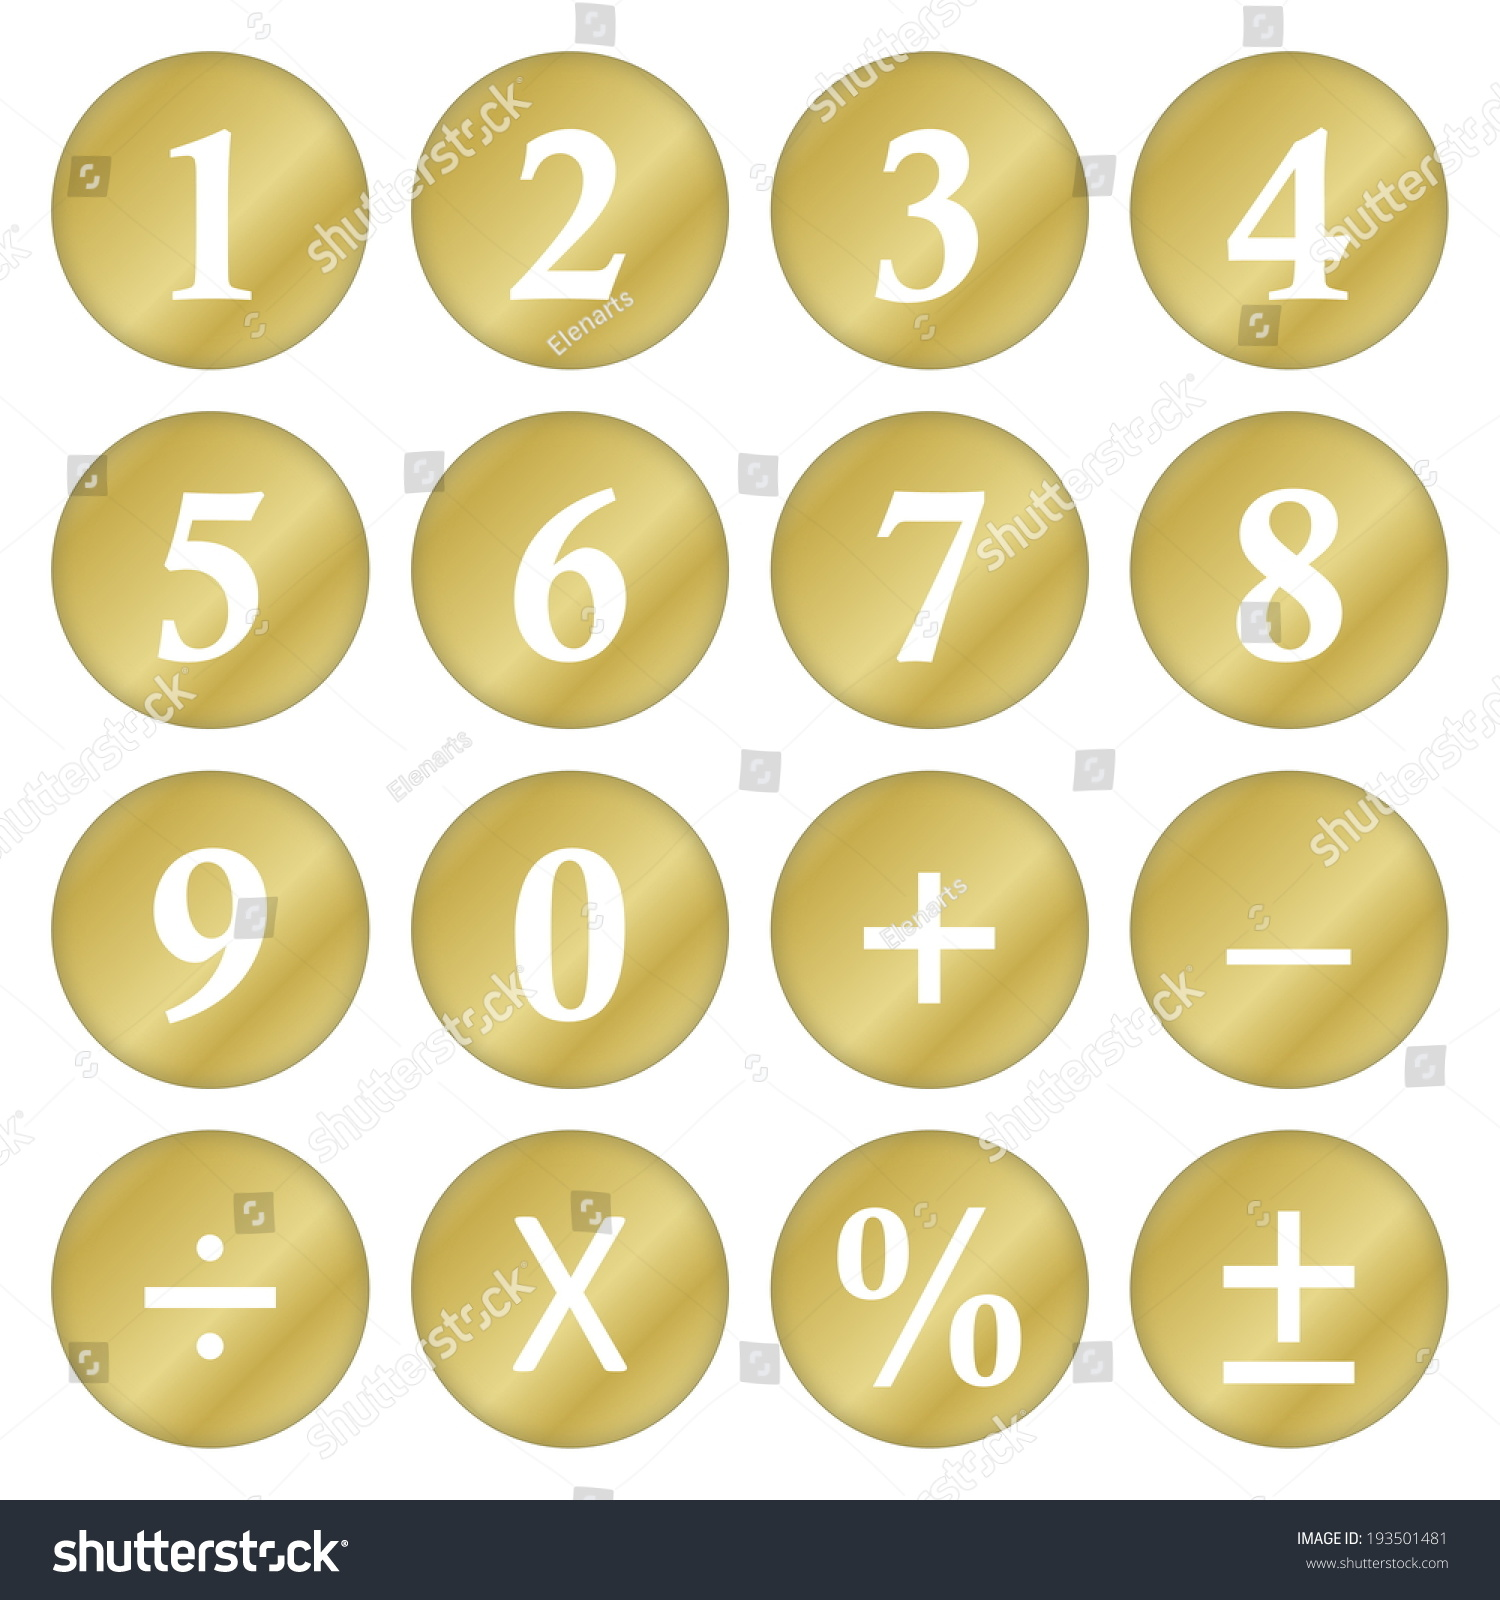 Golden mathematical numbers symbols isolated white stock golden mathematical numbers and symbols isolated in white background biocorpaavc Choice Image